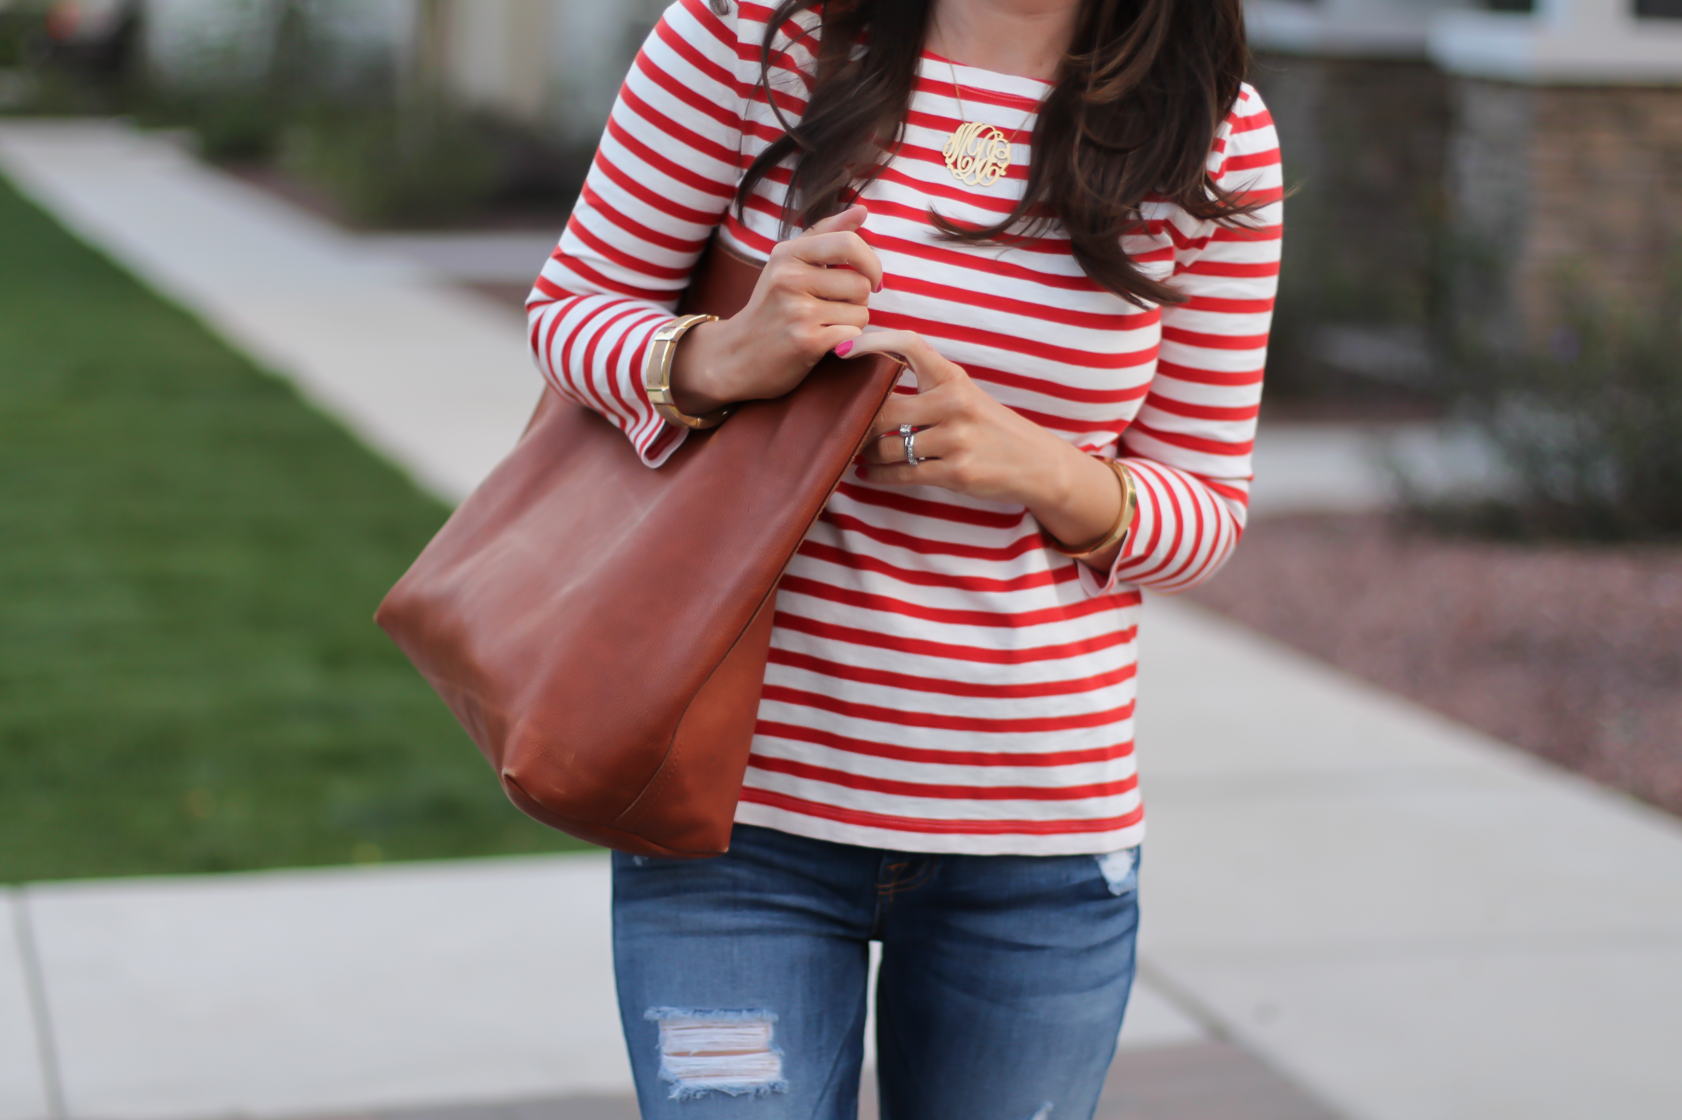 Red Striped Boatneck Tee, Distressed Skinny Jeans, Cognac Leather Flip Flop Sandals, Cognac Tote, J.Crew, 7 for All Mankind, Madewell 11